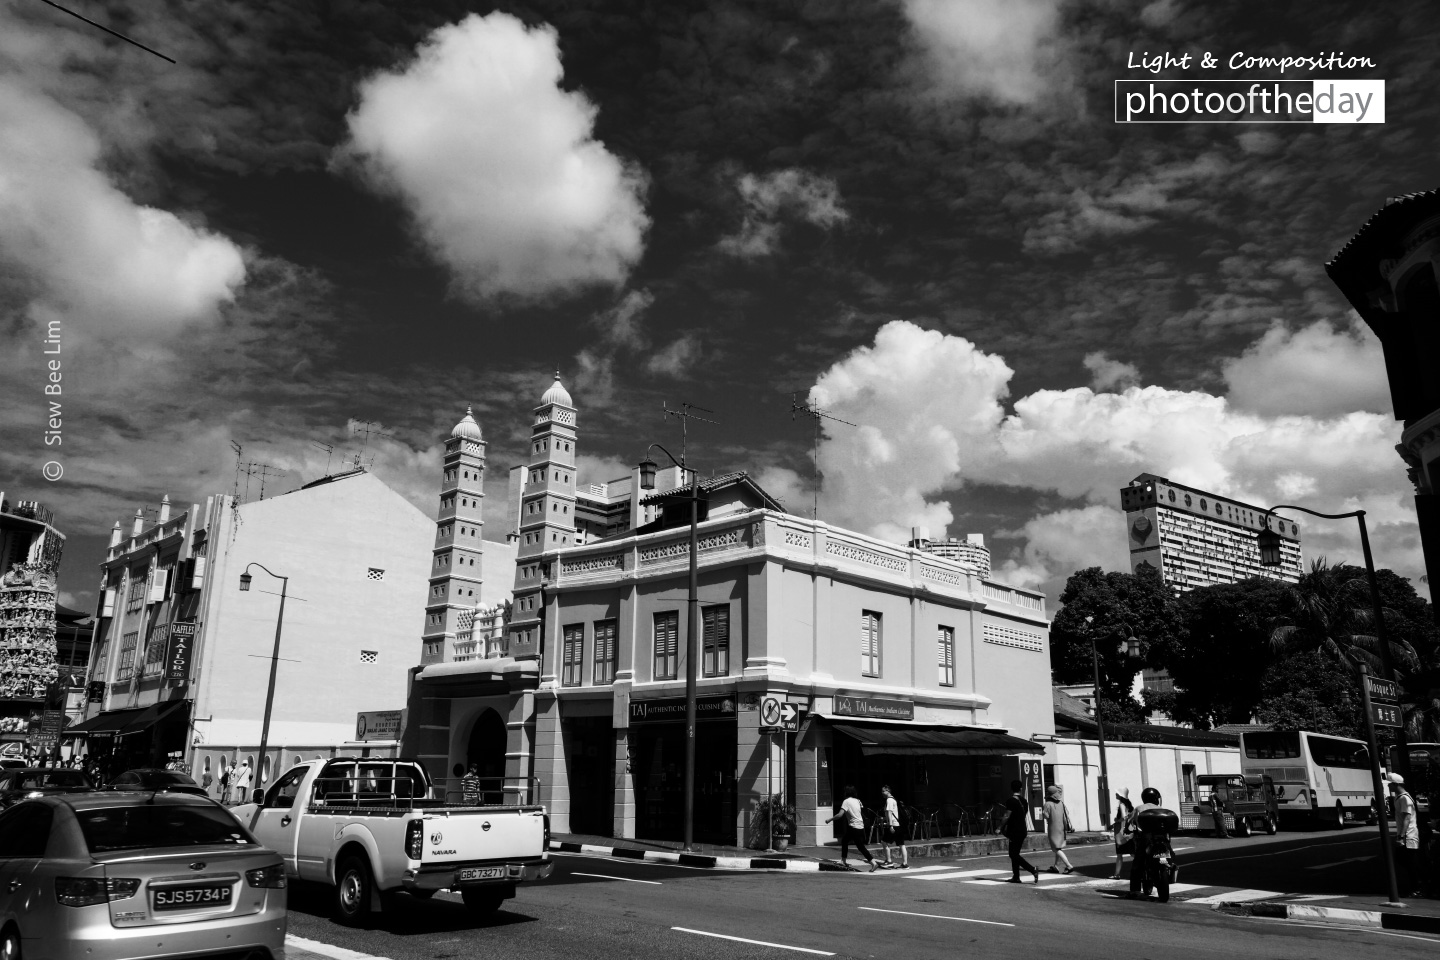 At Mosque Street, by Siew Bee Lim